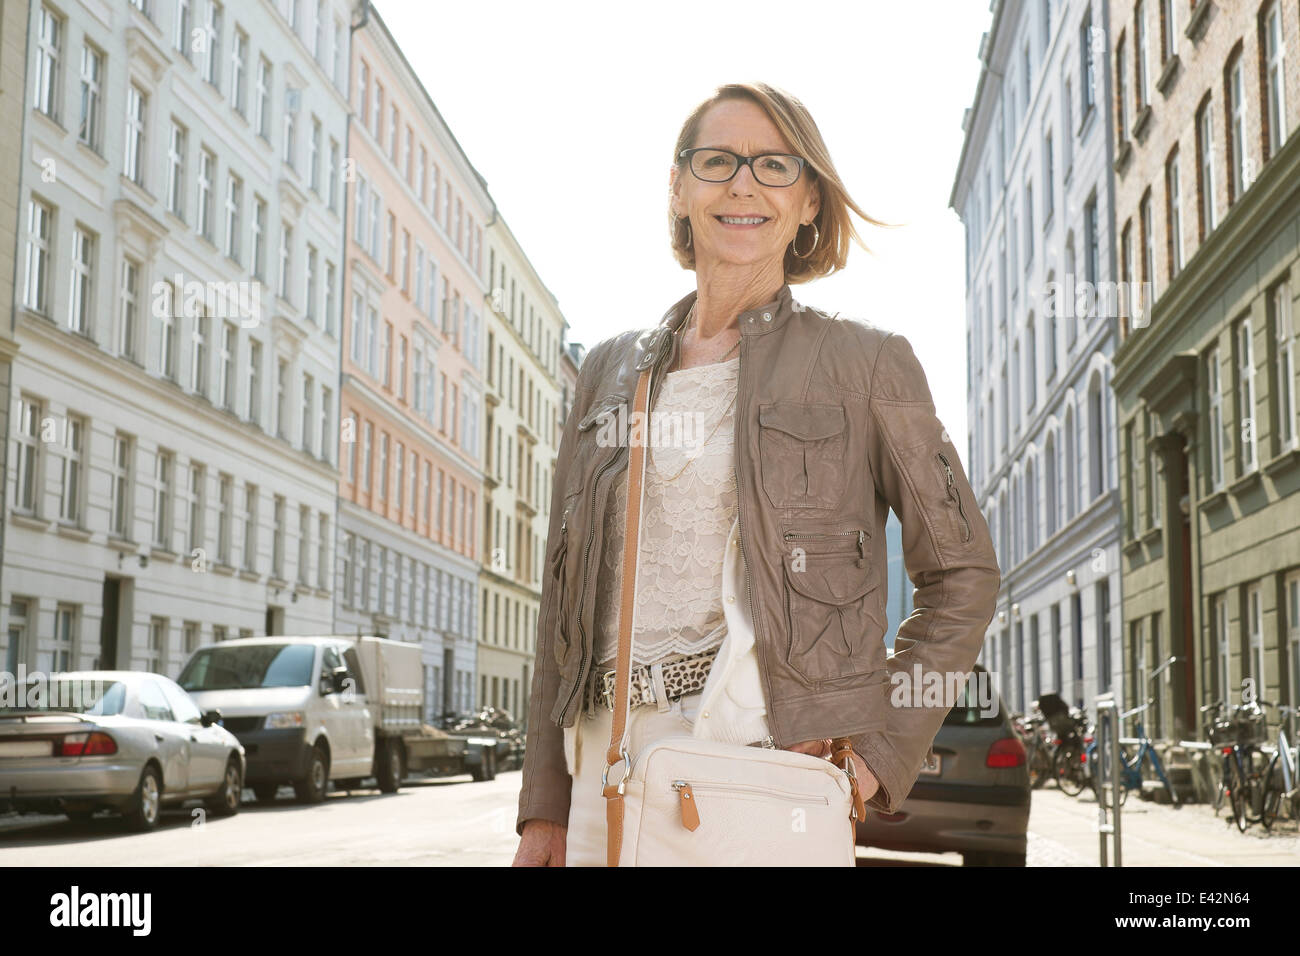 Portrait of senior woman shopping in the city - Stock Image